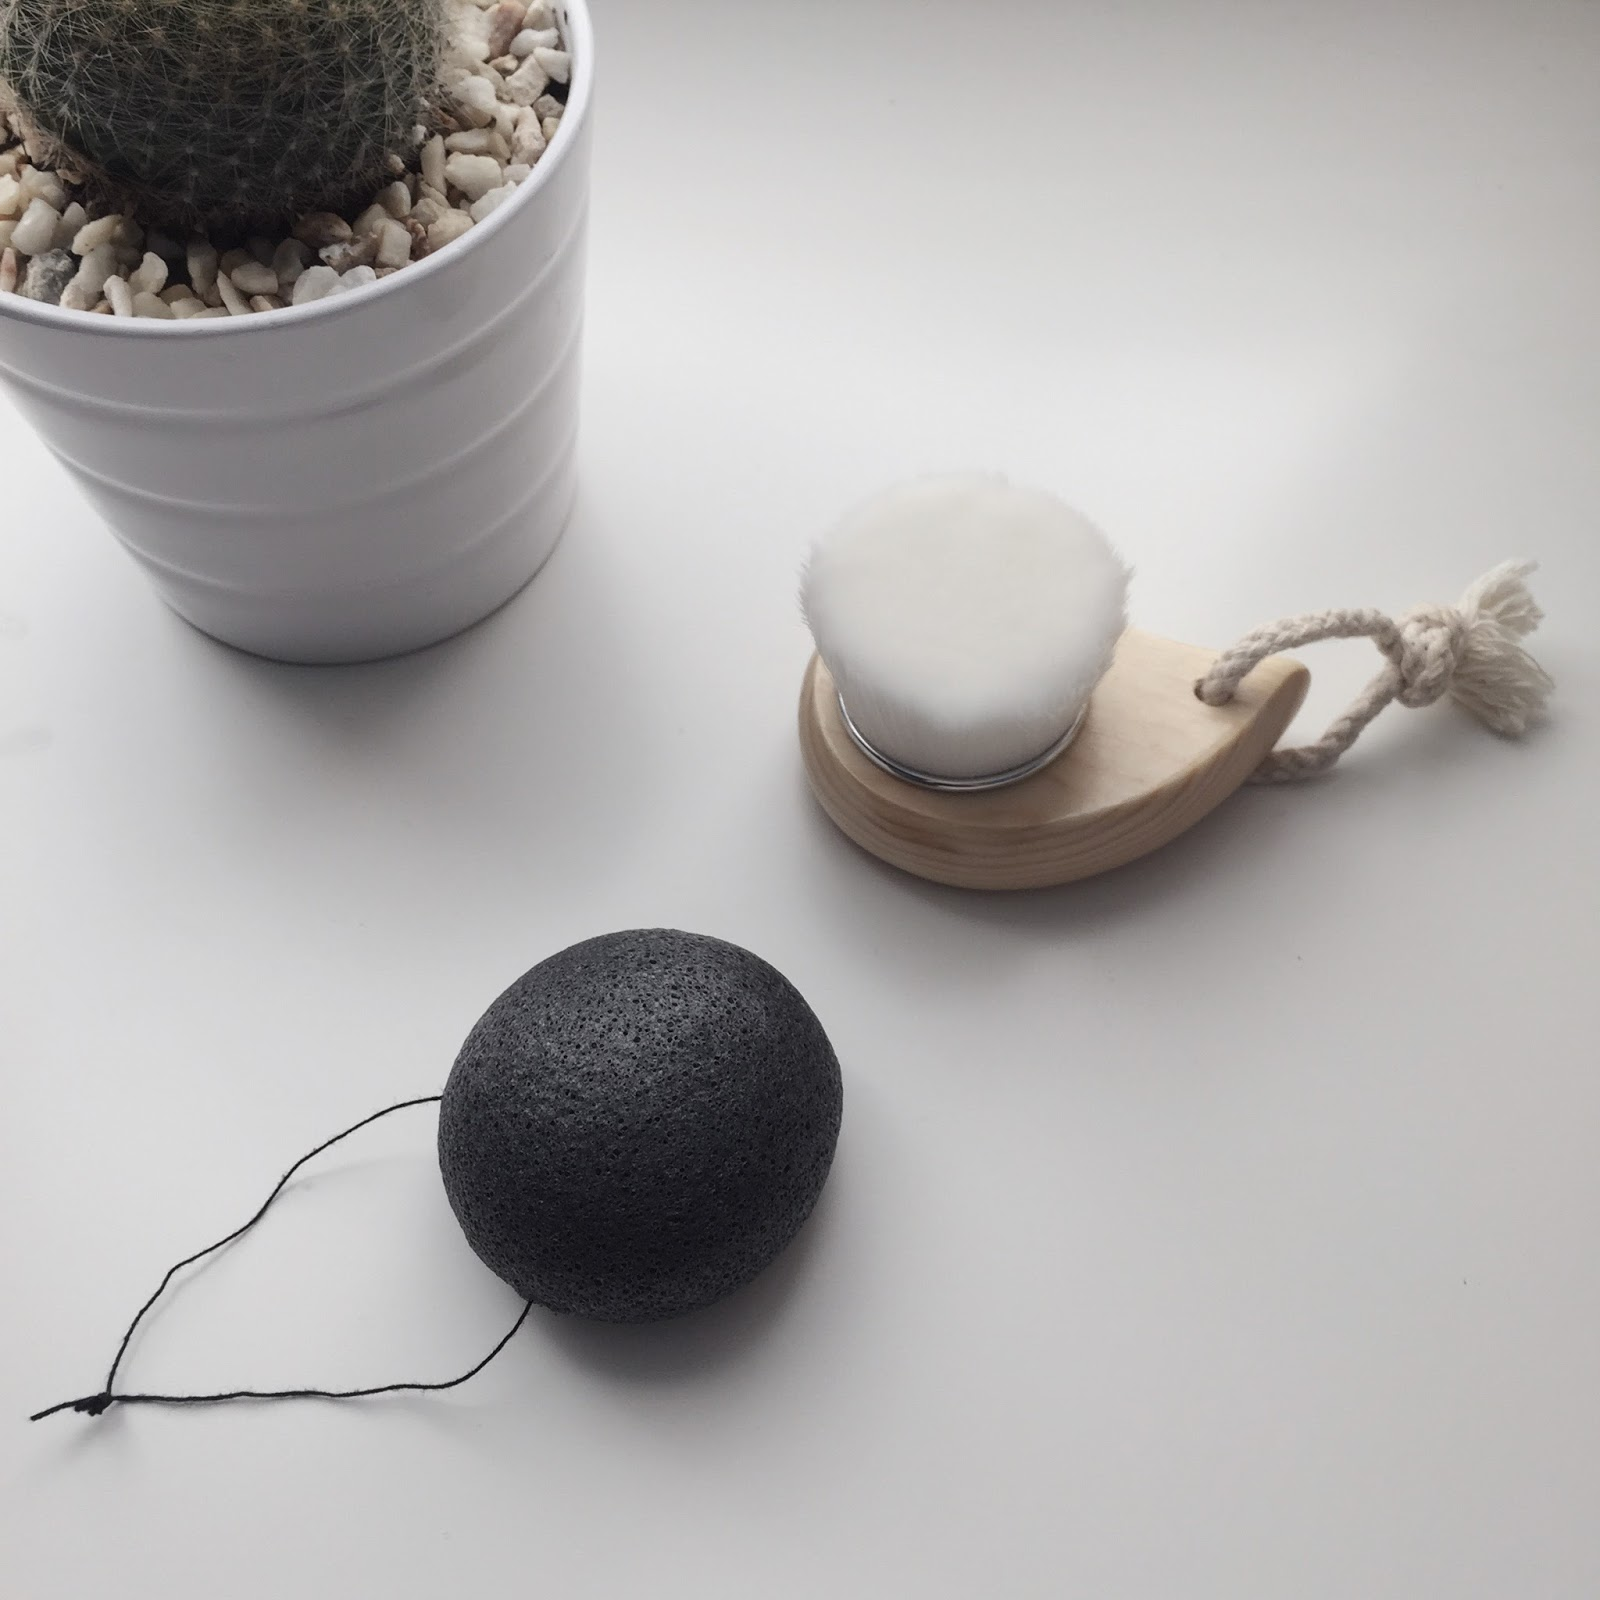 100% Pure Konjac Sponge and Cleansing Brush